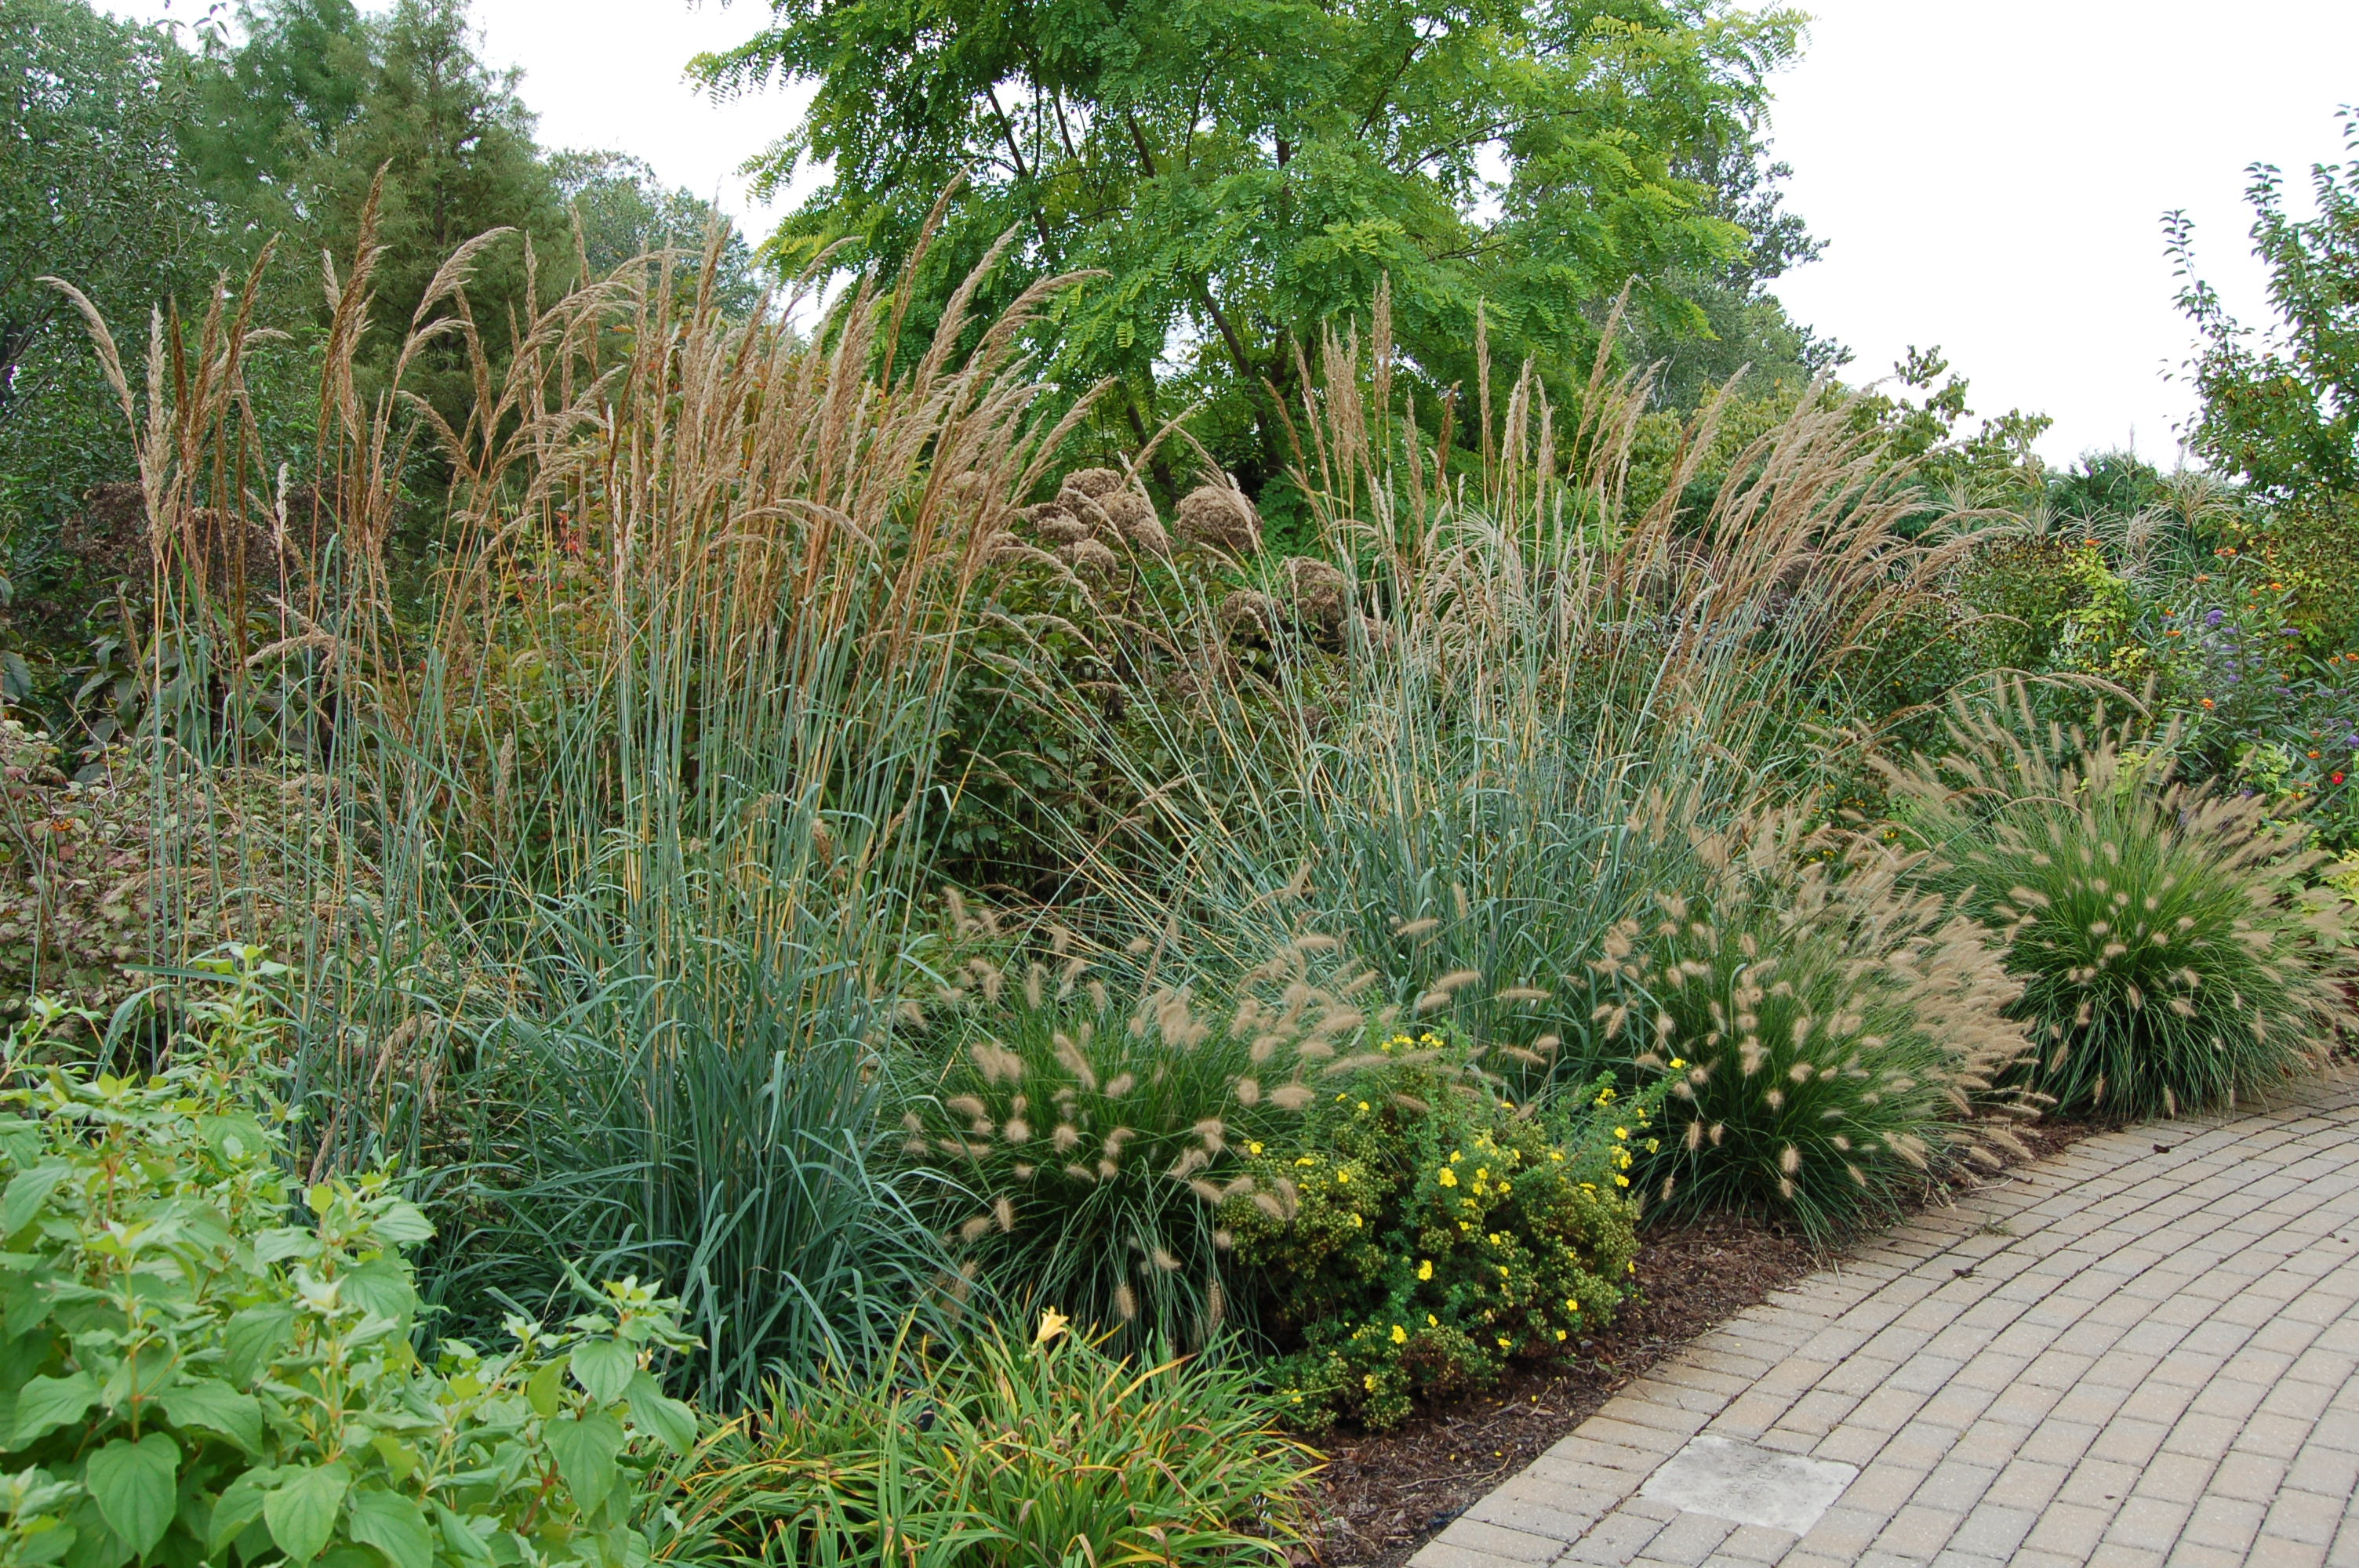 10 favorite ornamental grasses for midwest landscaping for Using grasses in garden design